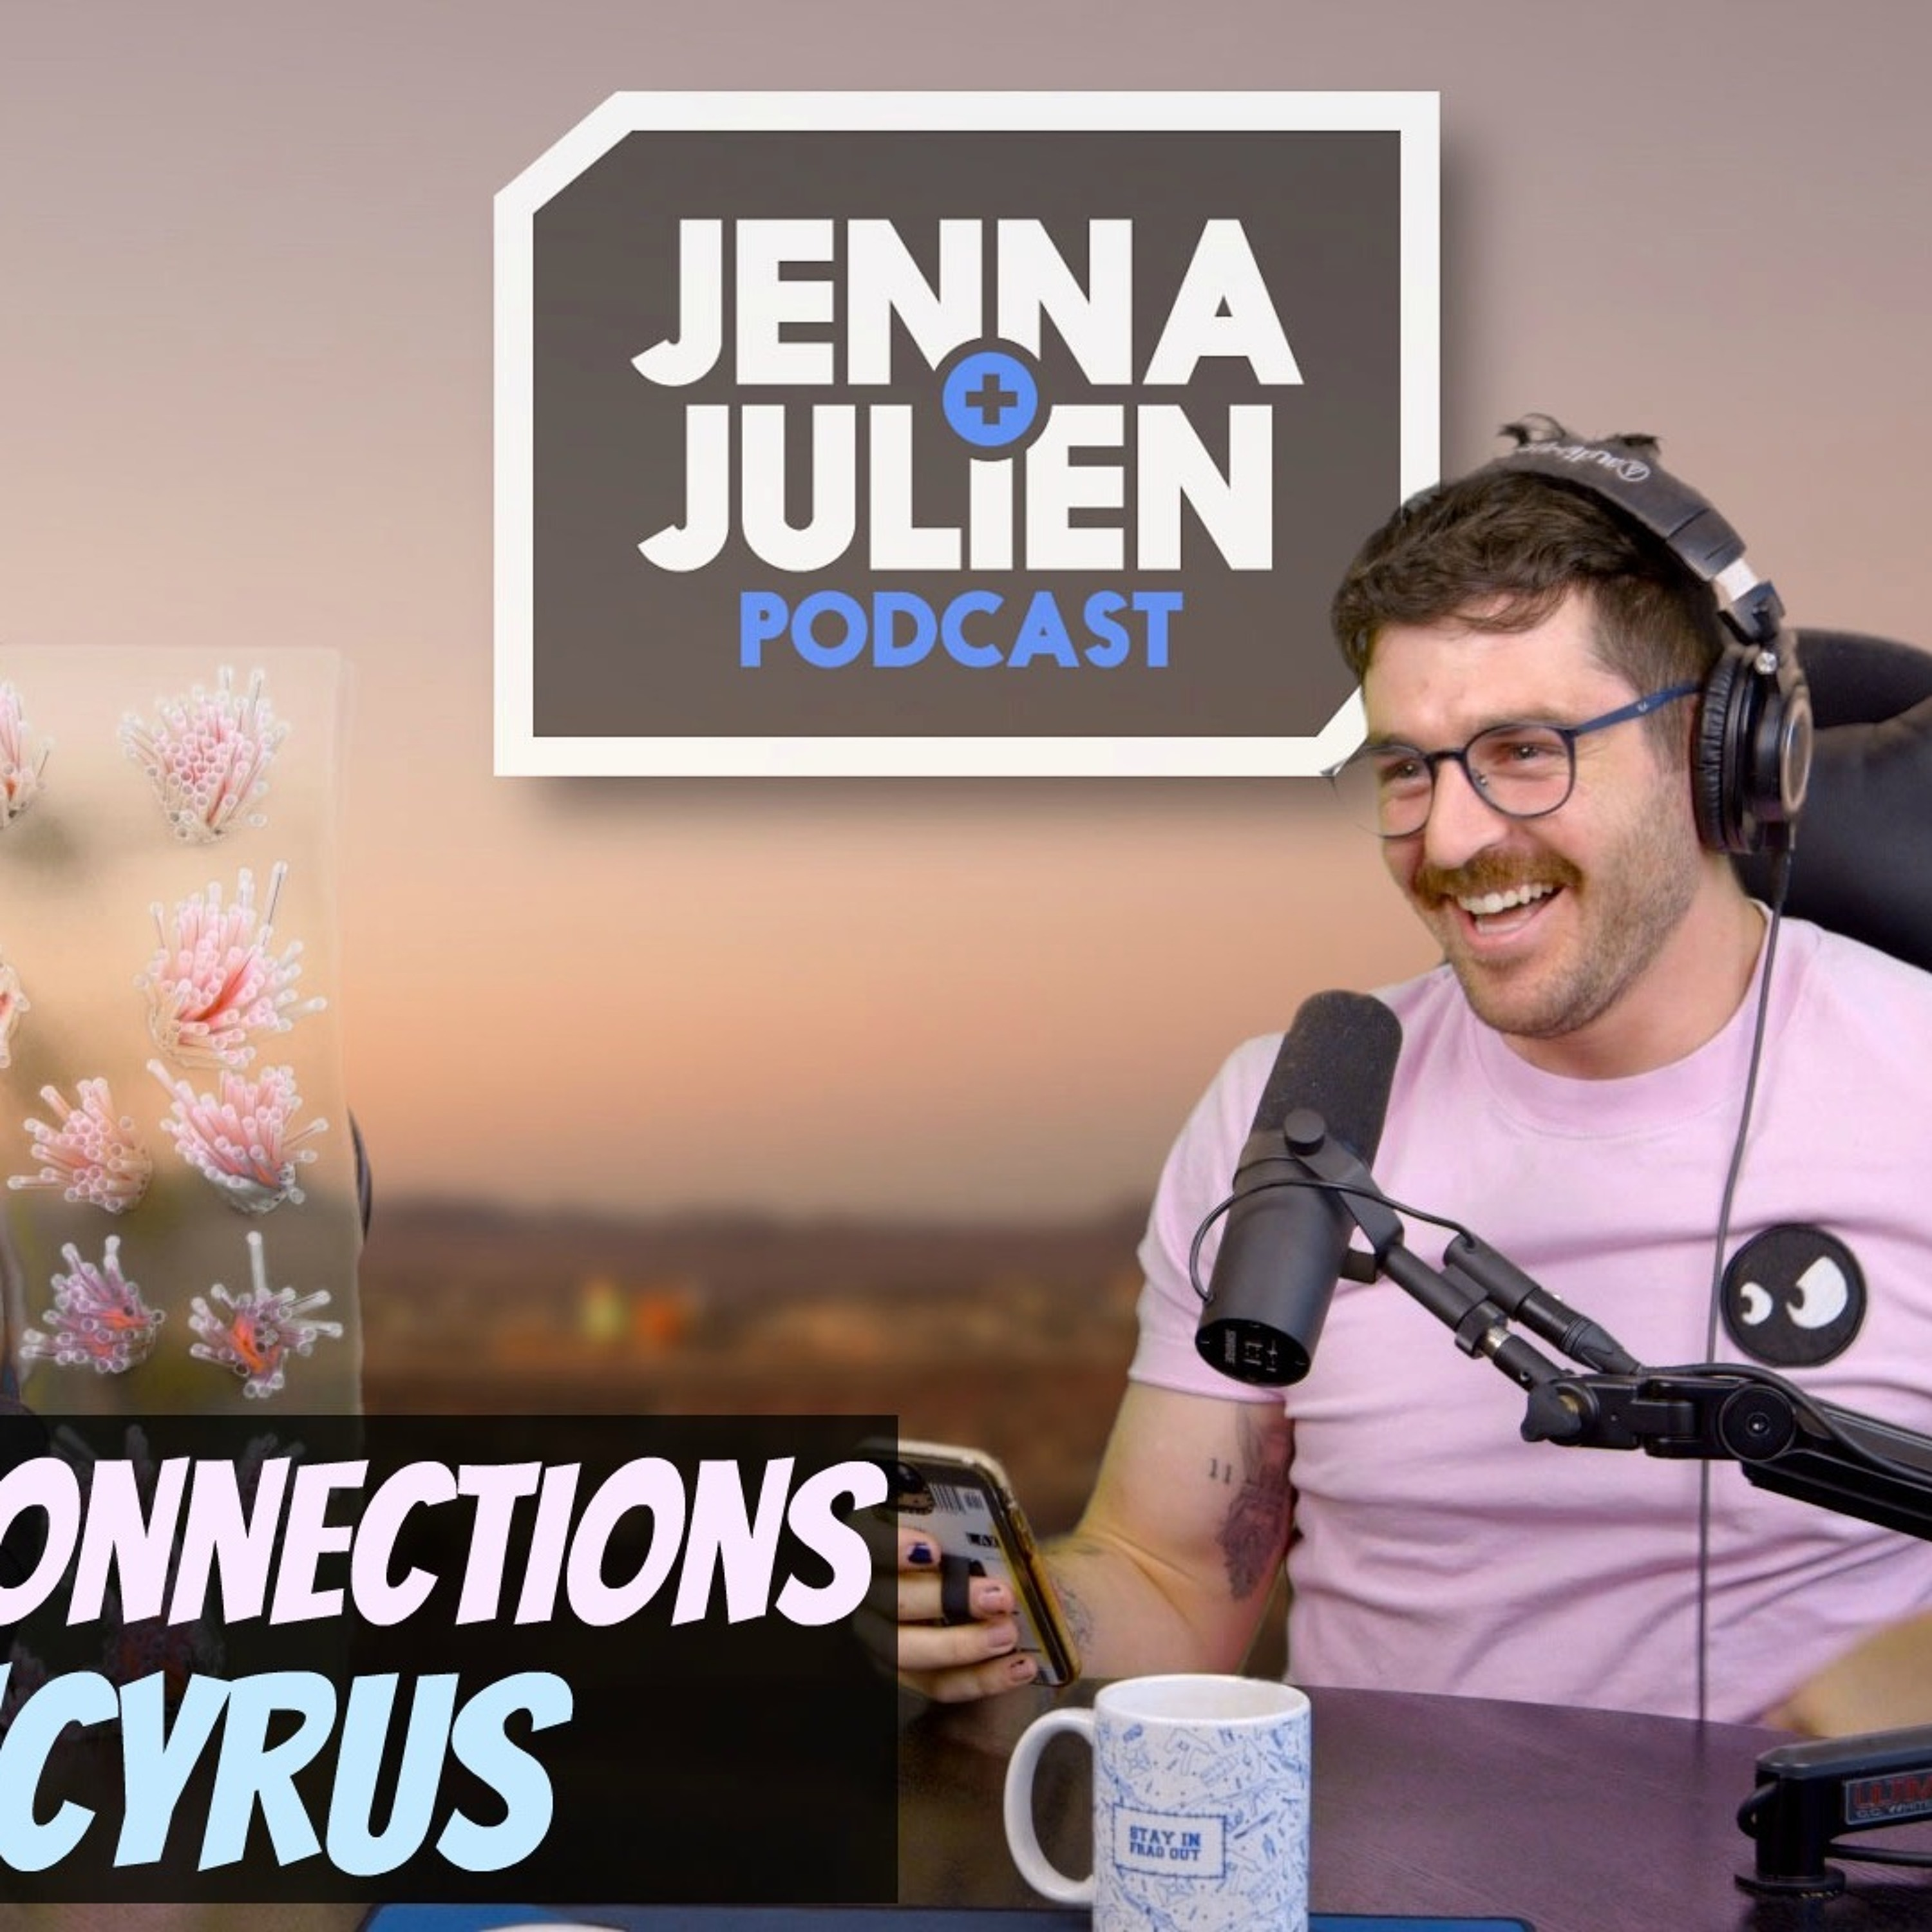 Podcast #284 - Missed Connections w/ JCyrus